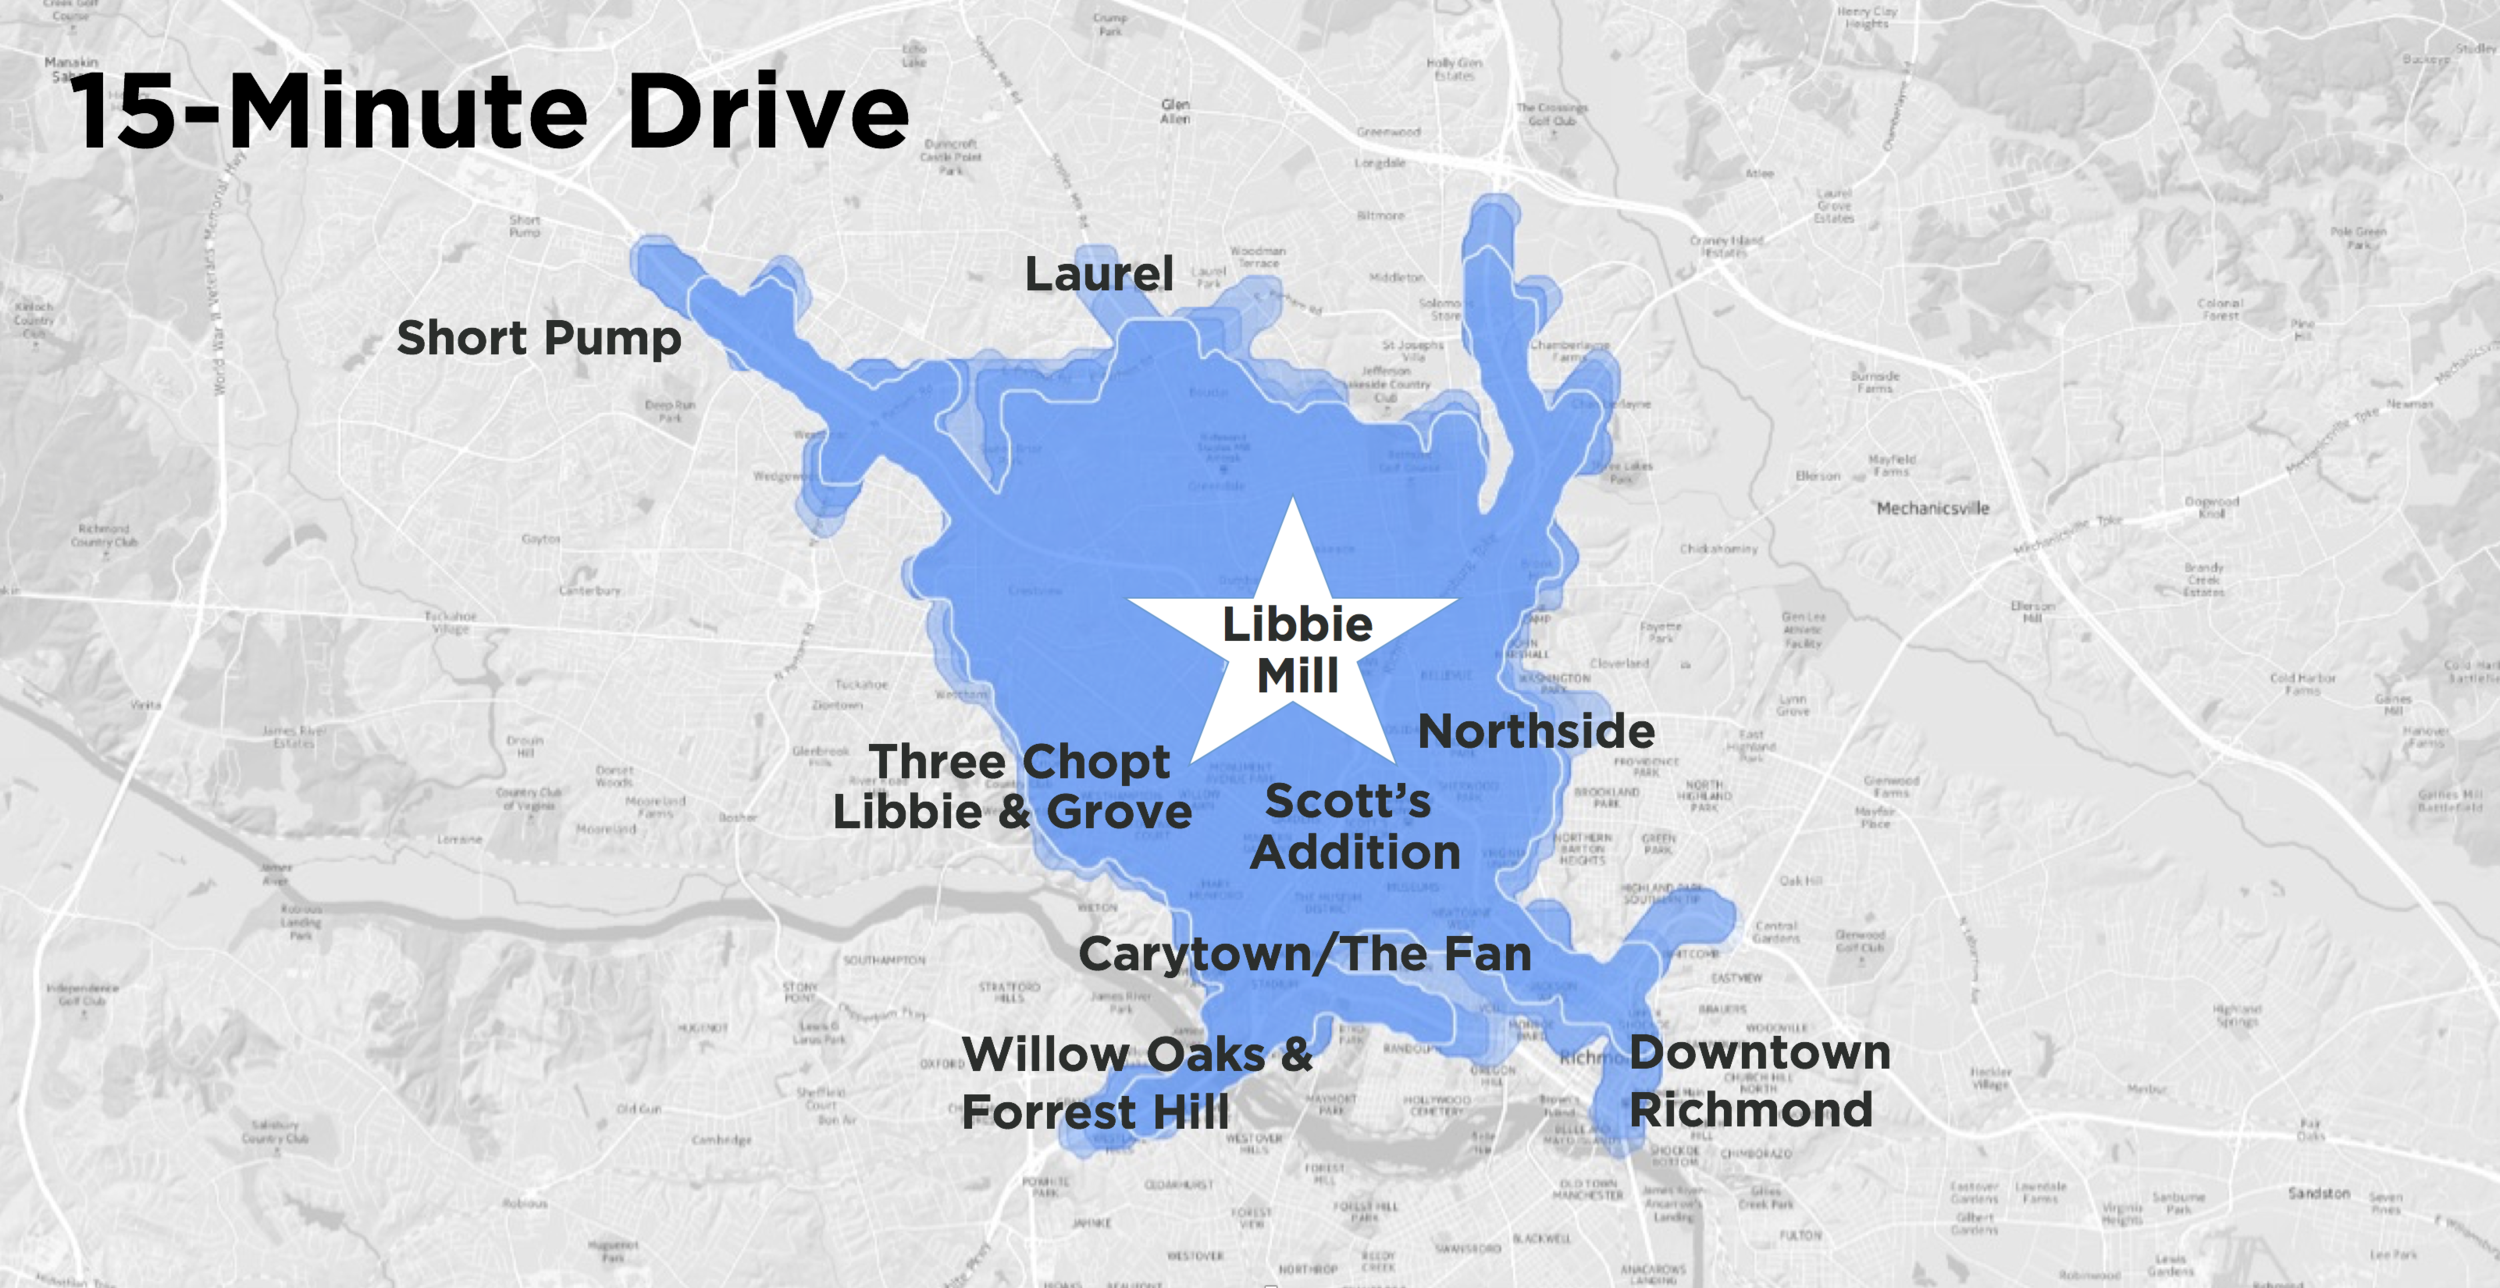 Live in the center of the RVA region - The ideal livable community puts everything within 15 minutes' travel time. Don't worry, we've got that covered. We're just a short drive from everything RVA has to offer. From Downtown to Short Pump to South of the River. We even have our own GRTC bus stop.